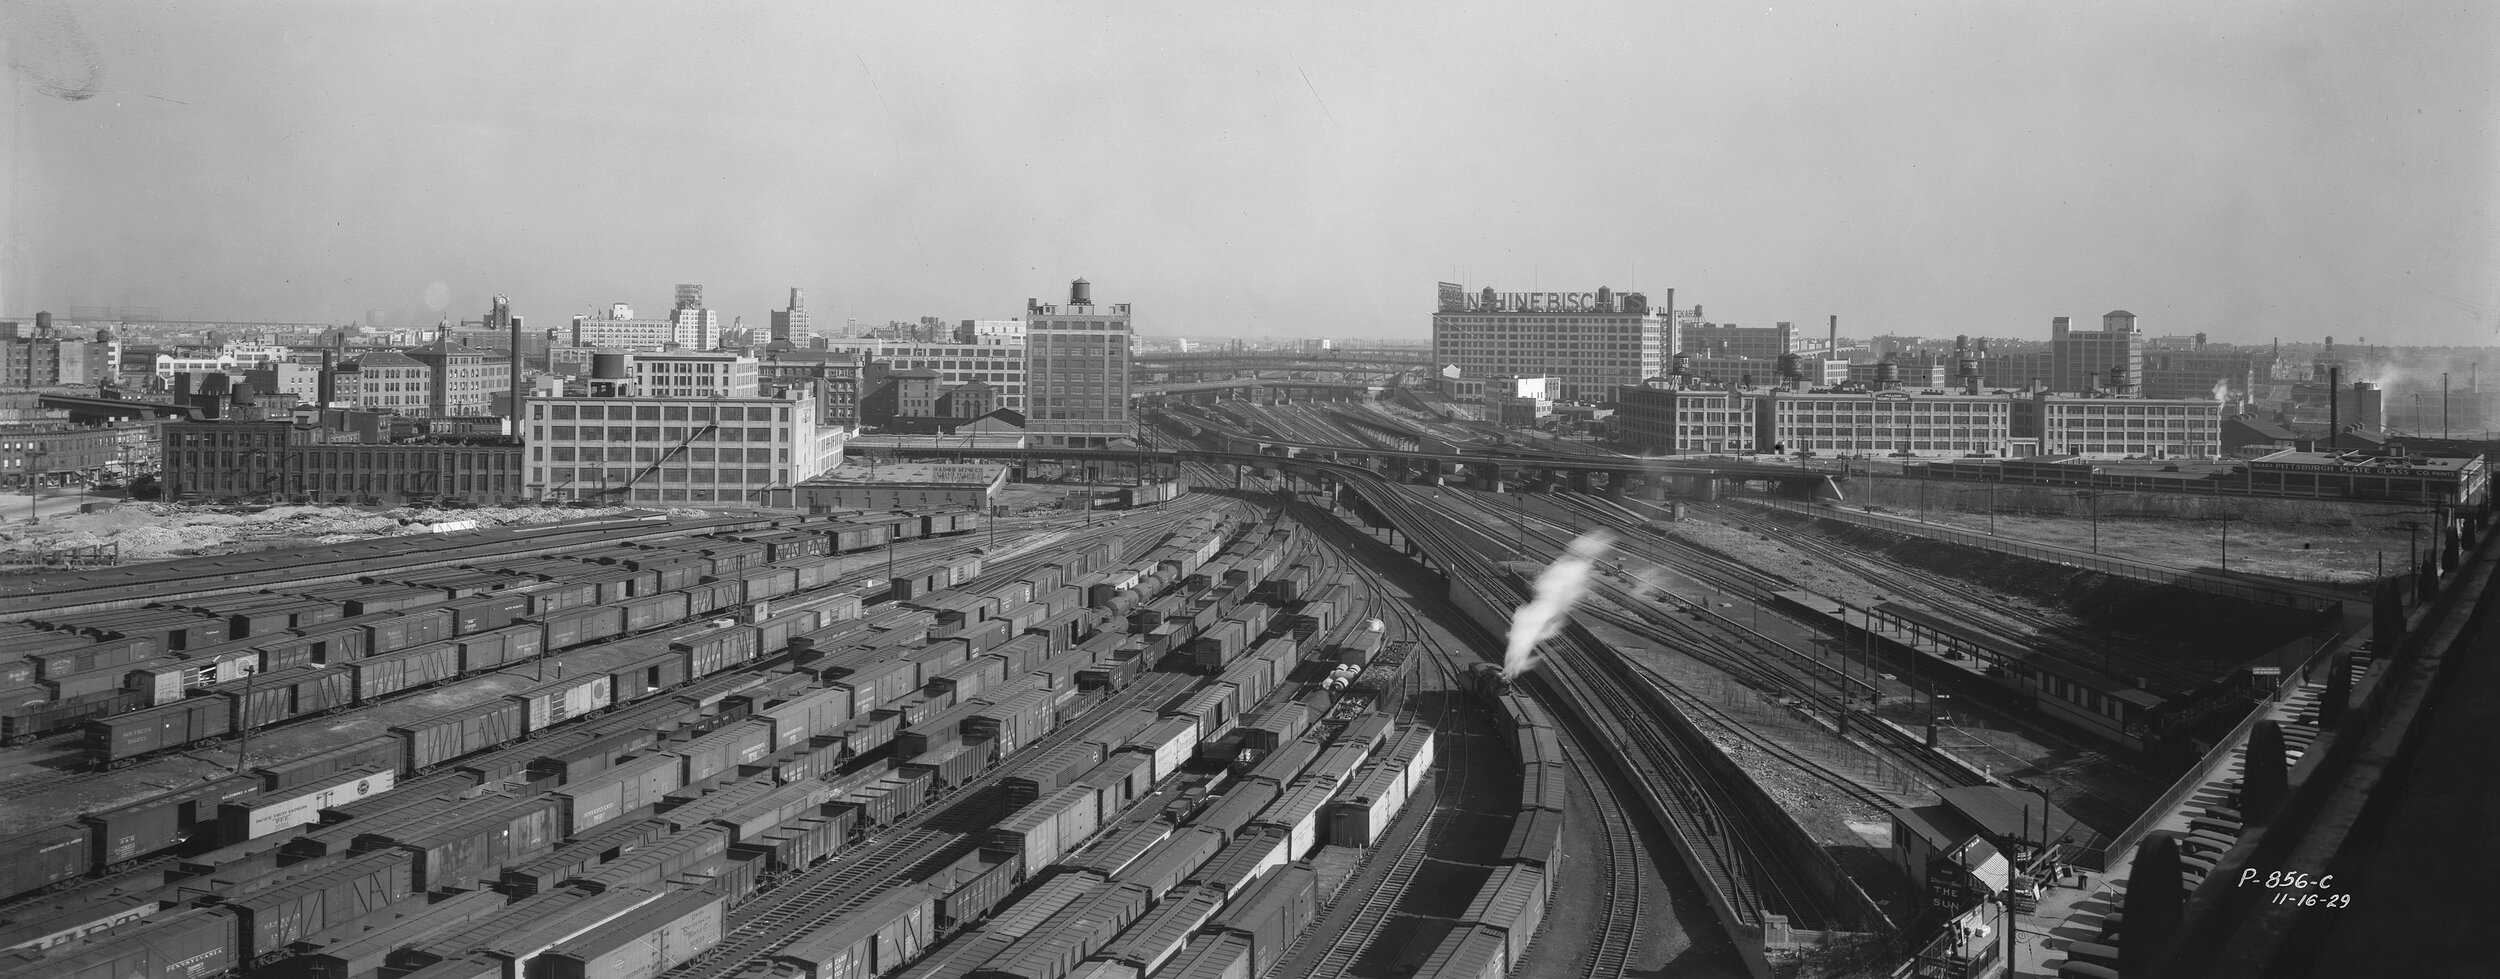 P-856-c:  Elevated view of the Sunnyside train yards, November 16, 1929. Borough President Queens Collection, NYC Municipal Archives.